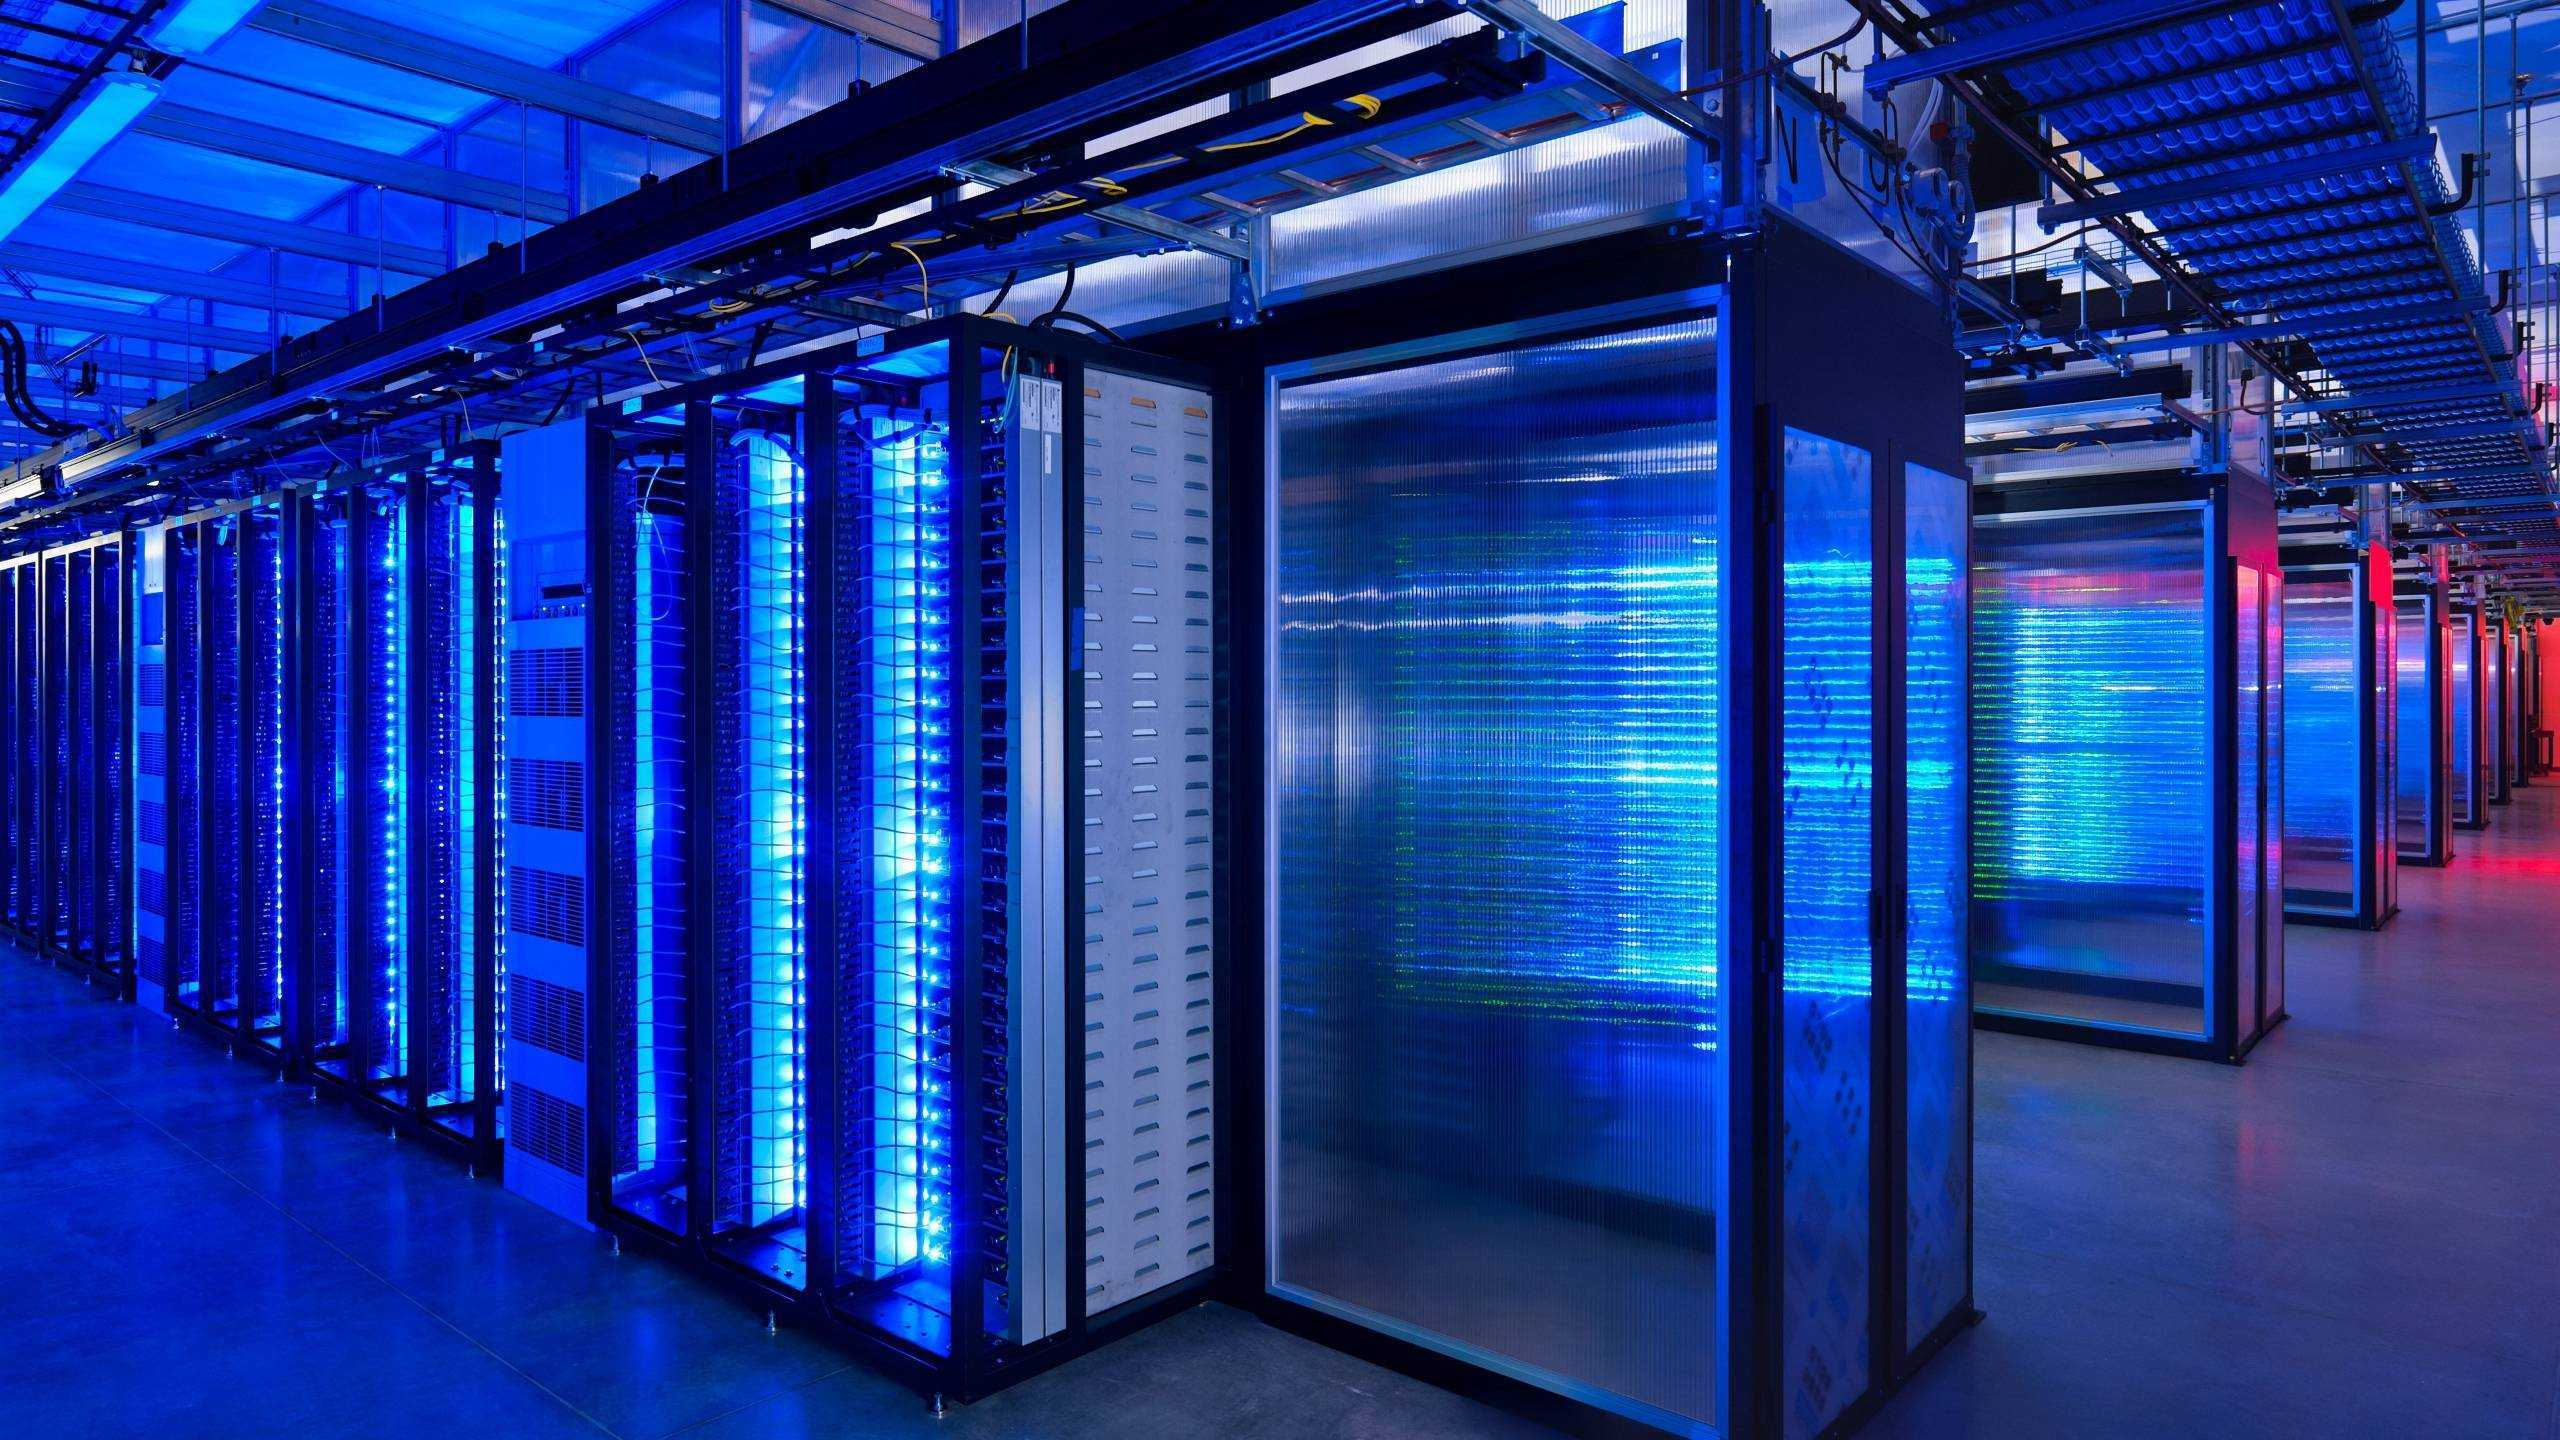 Obama wants the U.S. to have the world's fastest supercomputer by 2025.